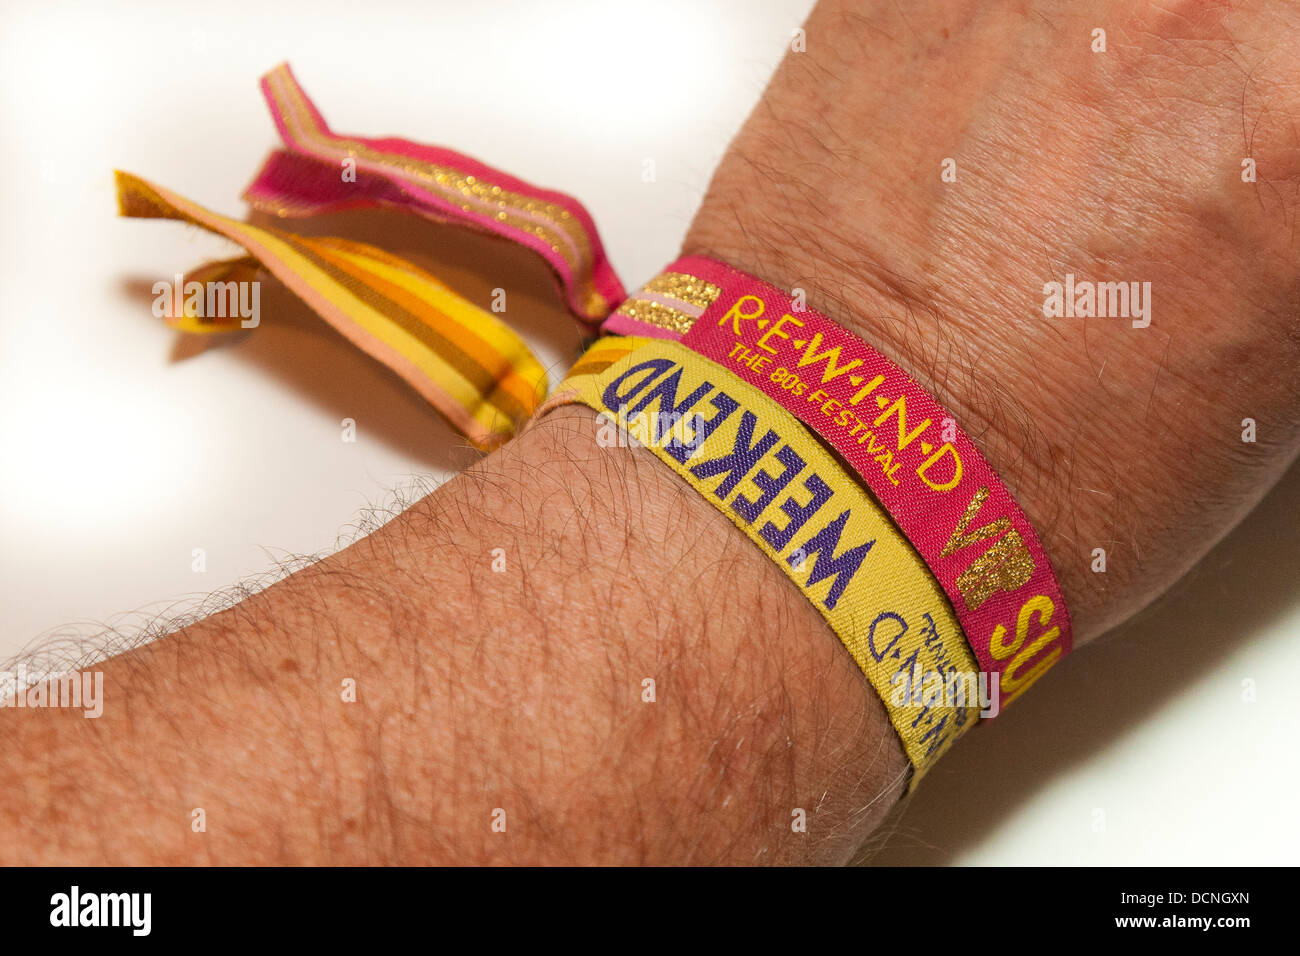 VIP wrist tags for admission to 'REWIND - The 80s Festival' held 16-17-18 August 2013 at Henley-on-Thames, - Stock Image